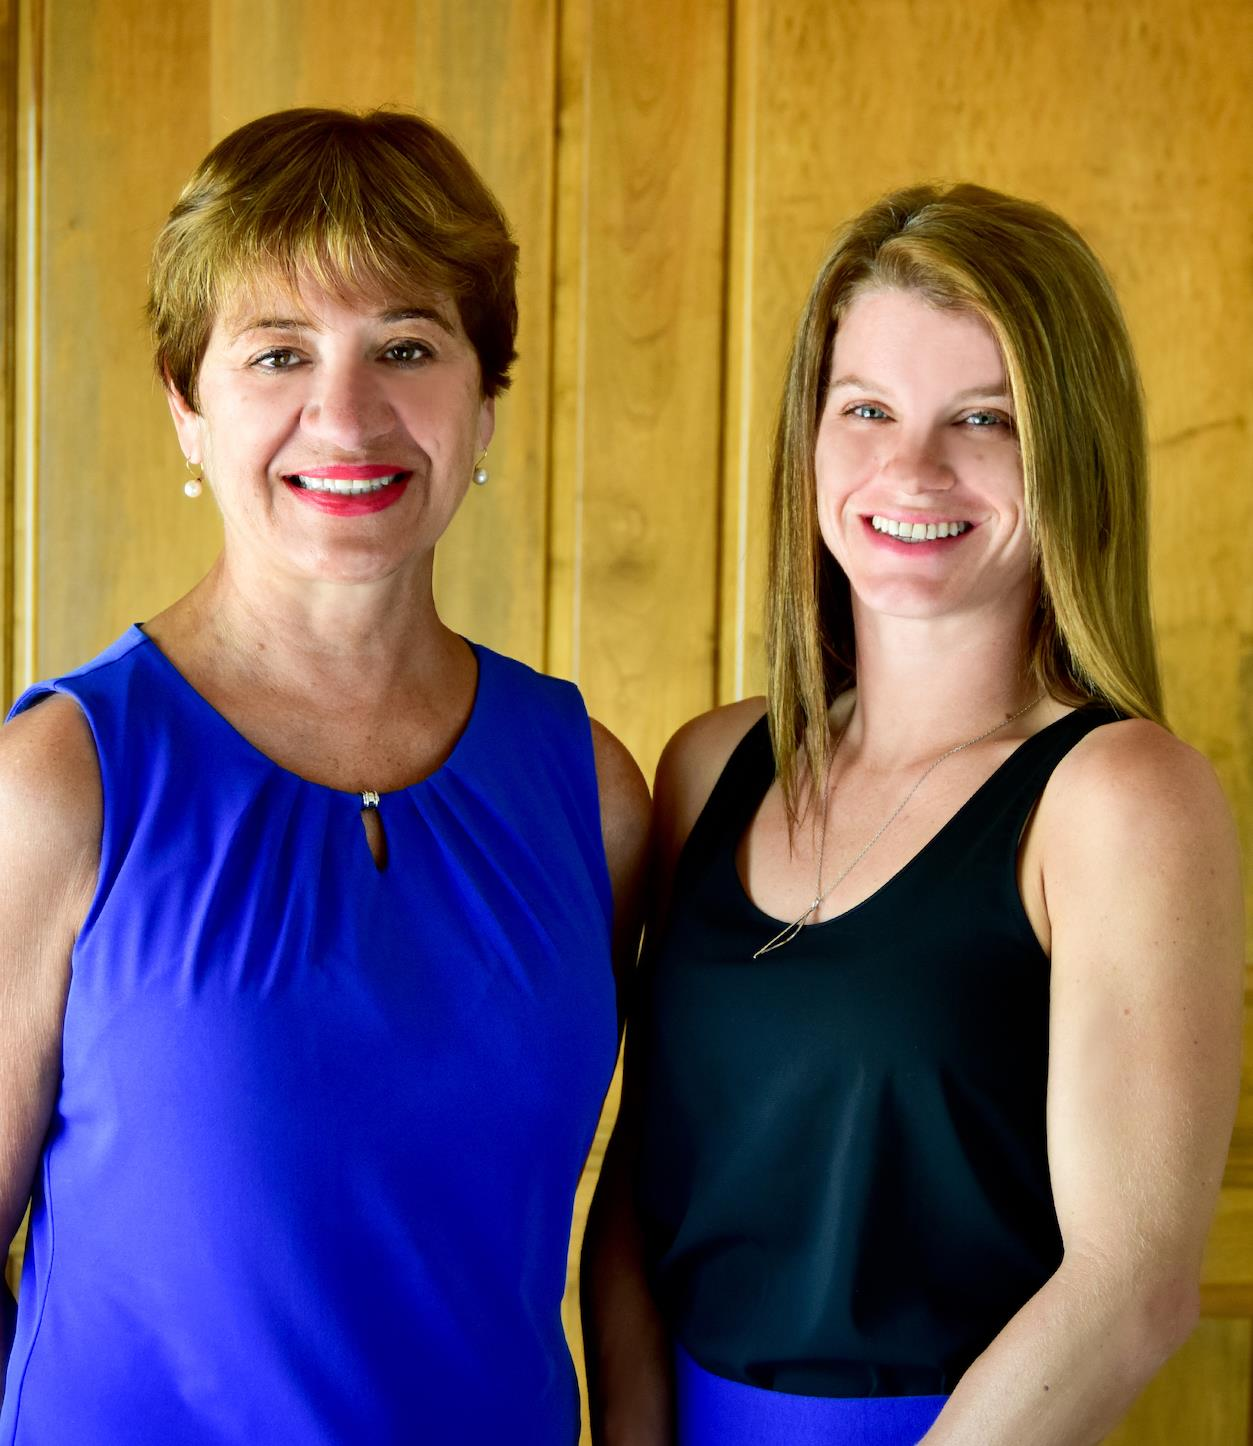 Piera Dyer & Bianca Smith...CR Piera Dyer & Bianca Smith...CR is a licensed real estate agent in Glendale WI